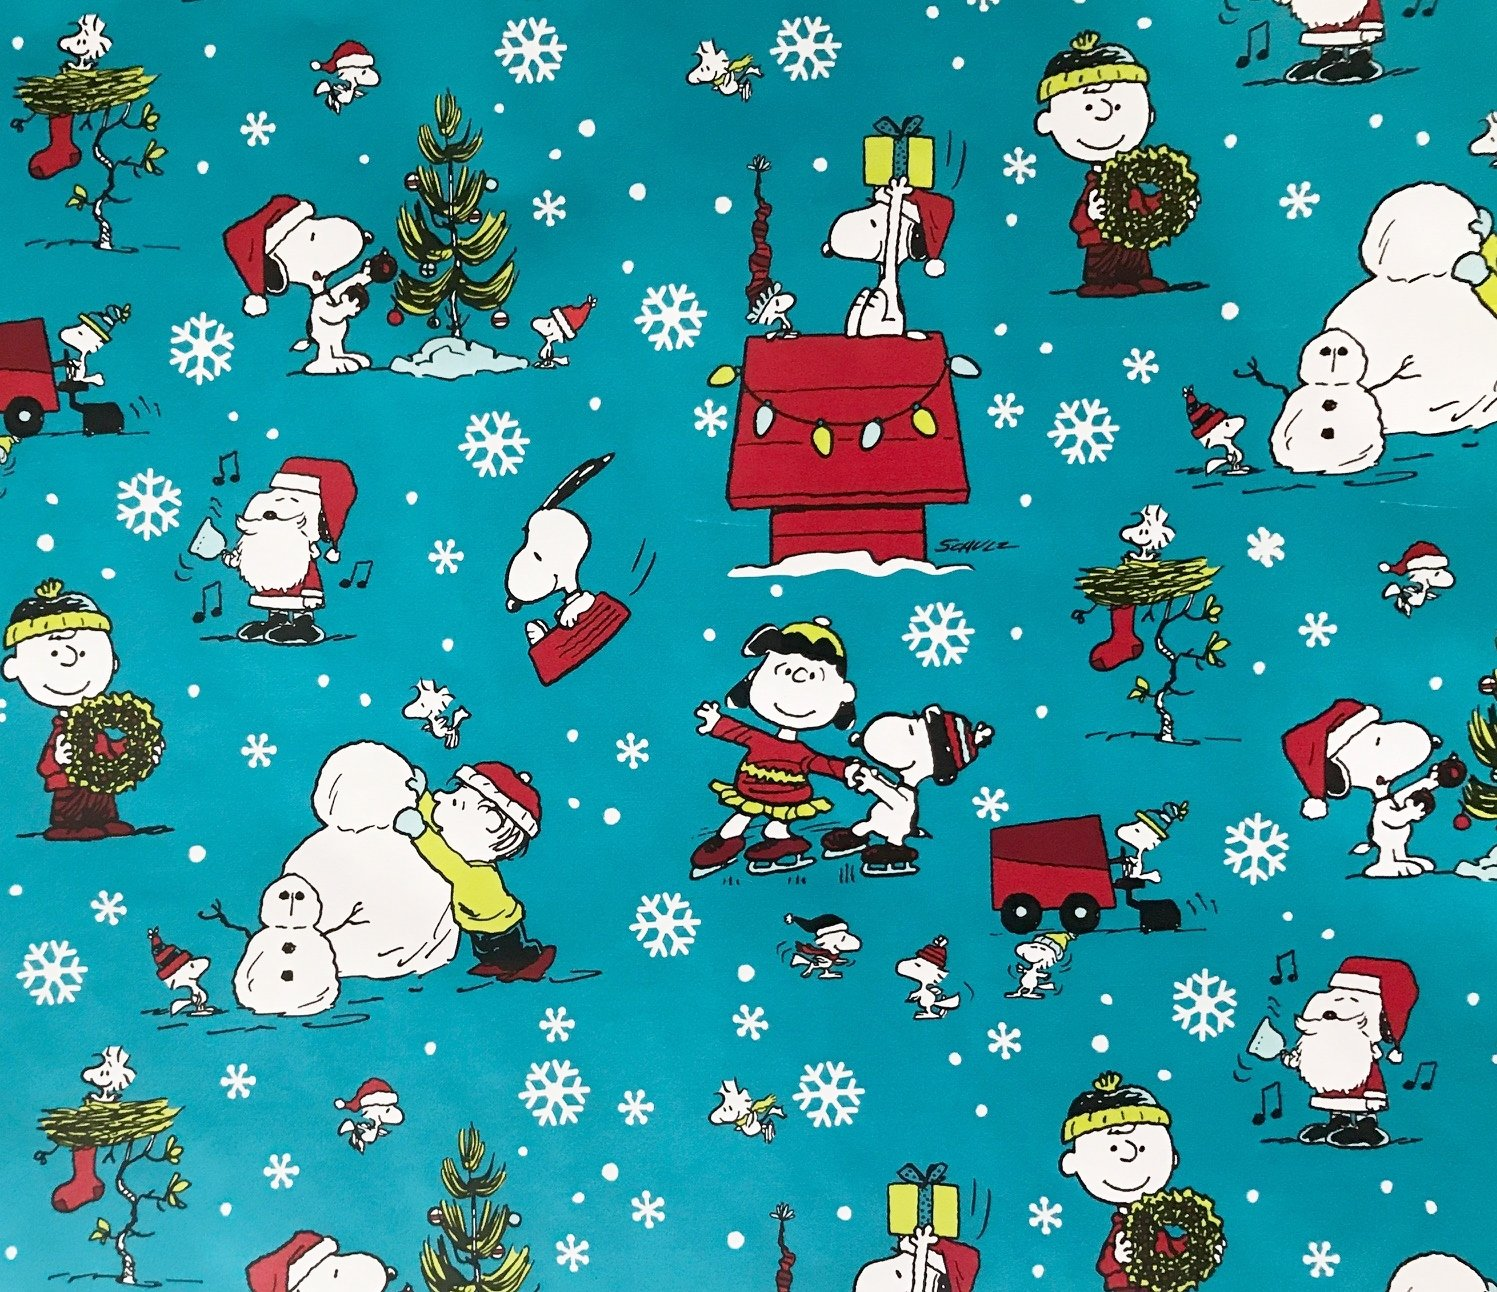 Amazon.com: Peanuts Christmas Wrapping Paper Gift Wrap - Snoopy ...